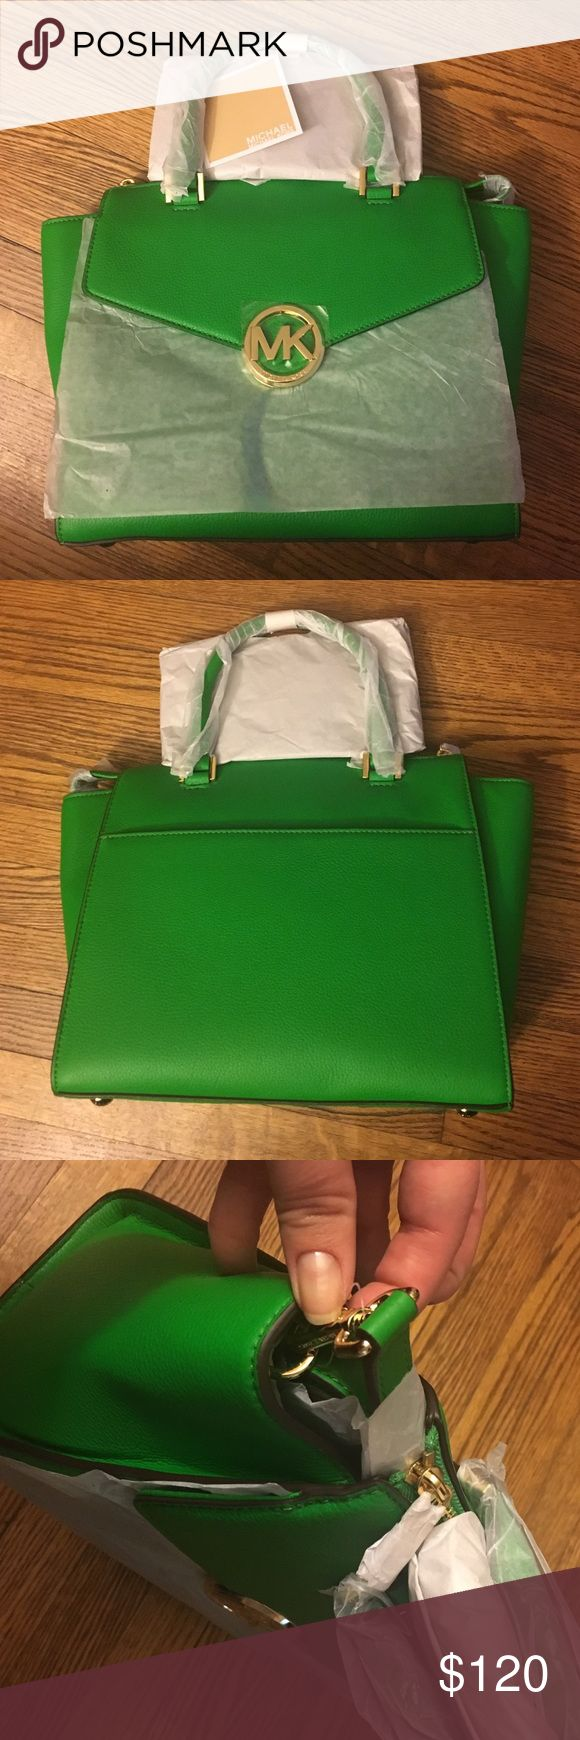 MK Handbag New MK leather handbag (color on tag: Palm) with paper packing still on the handbag. The third photo, tried to show that it has a removable, longer shoulder strap still wrapped inside the bag. Michael Kors Bags